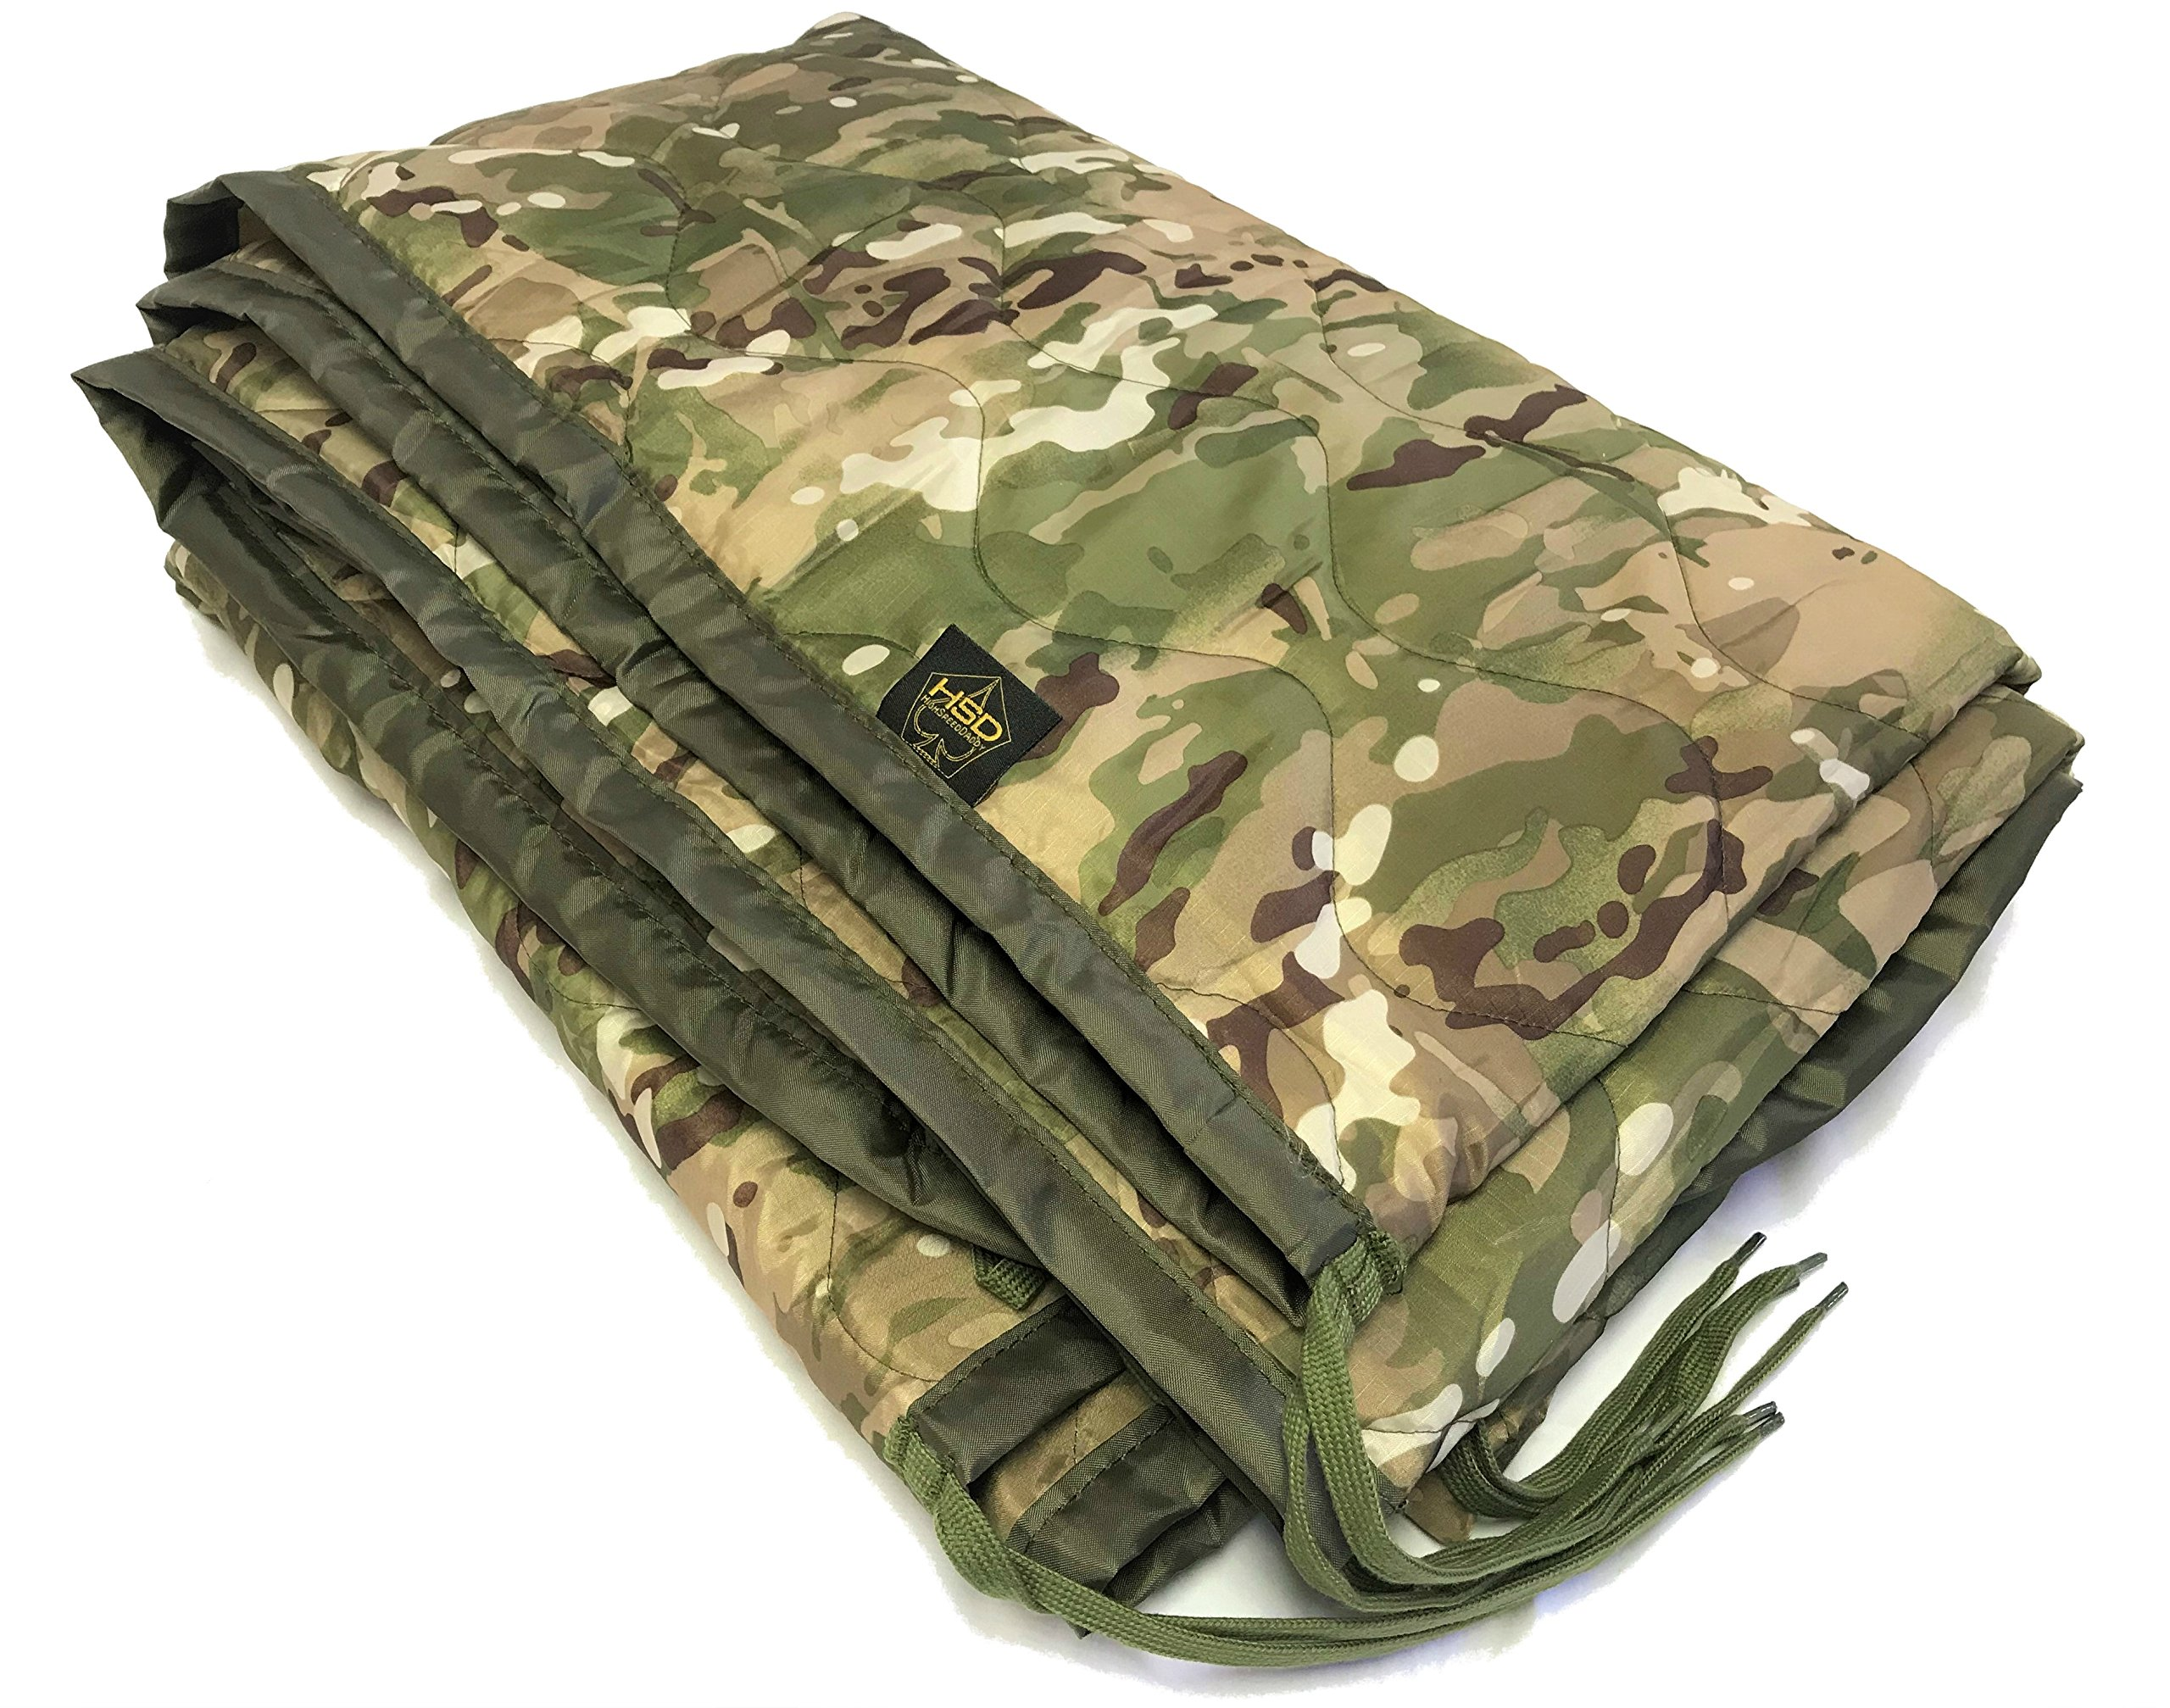 HighSpeedDaddy HSD Mini Woobie Military Style Poncho Liner Kids Baby Blanket (Multicam, Adult) by HighSpeedDaddy